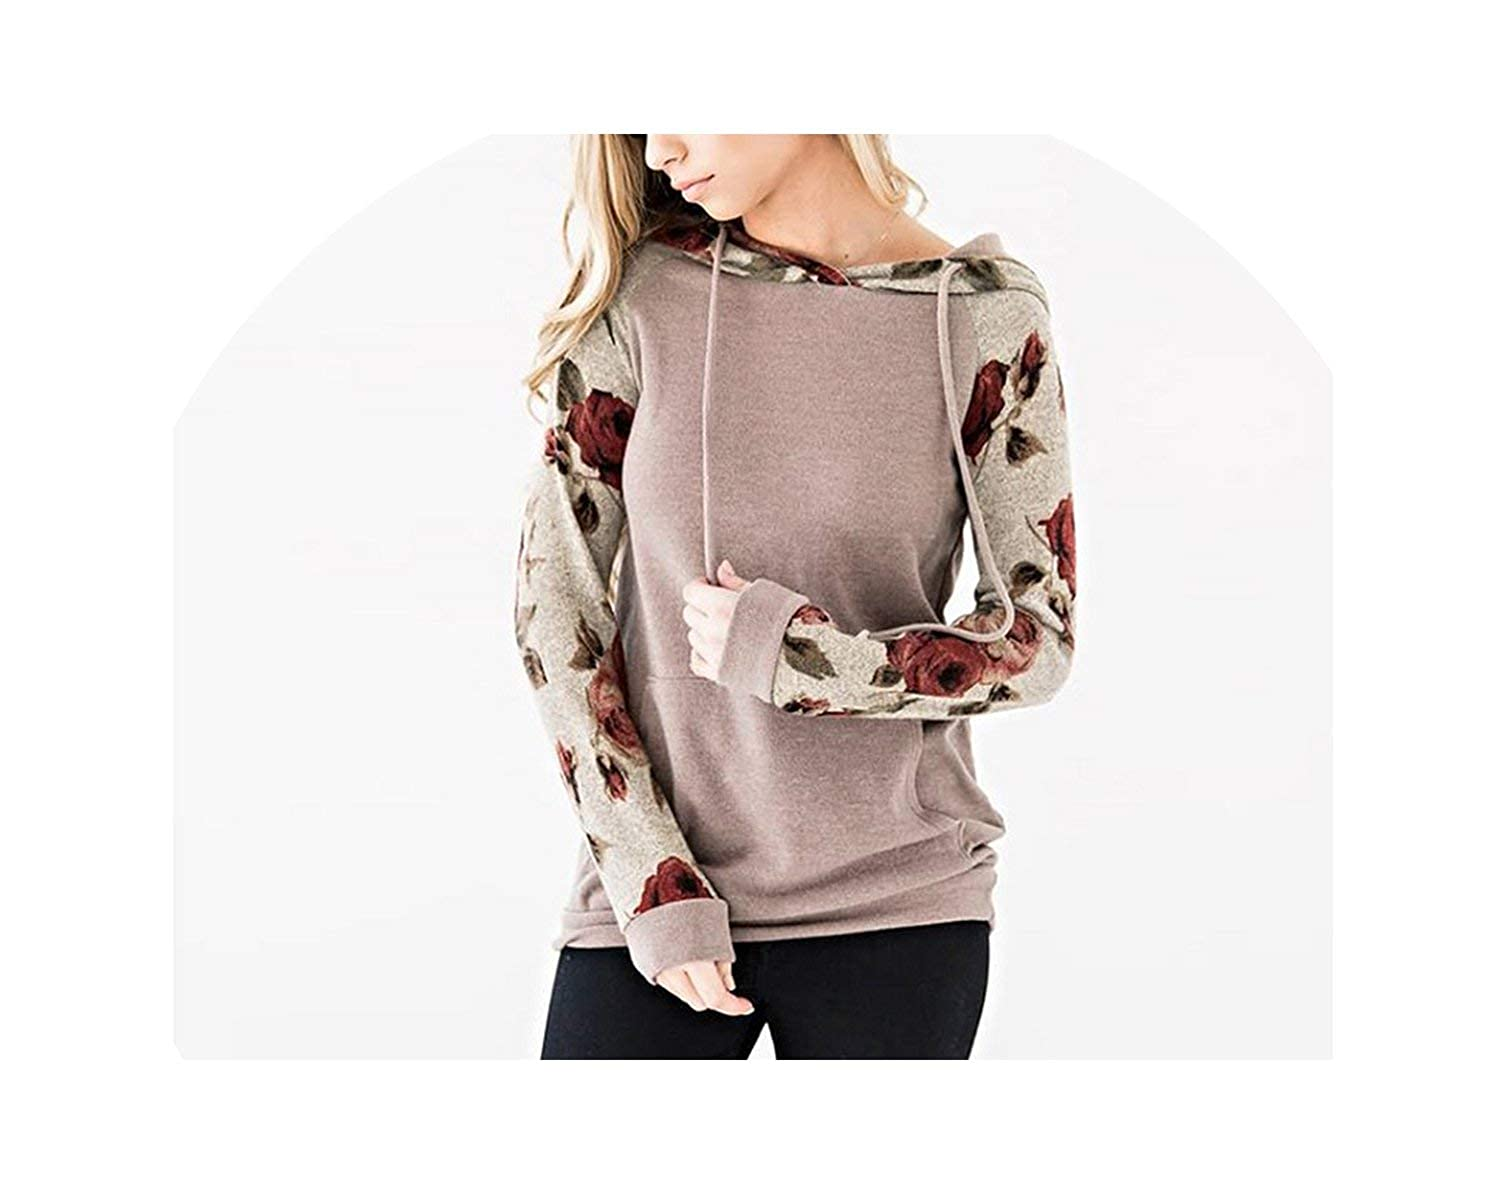 Hoodies Sweatshirt Women Long Sleeve Hooded Drawstring Tops Jumper Autumn Winter Pockets Pullover